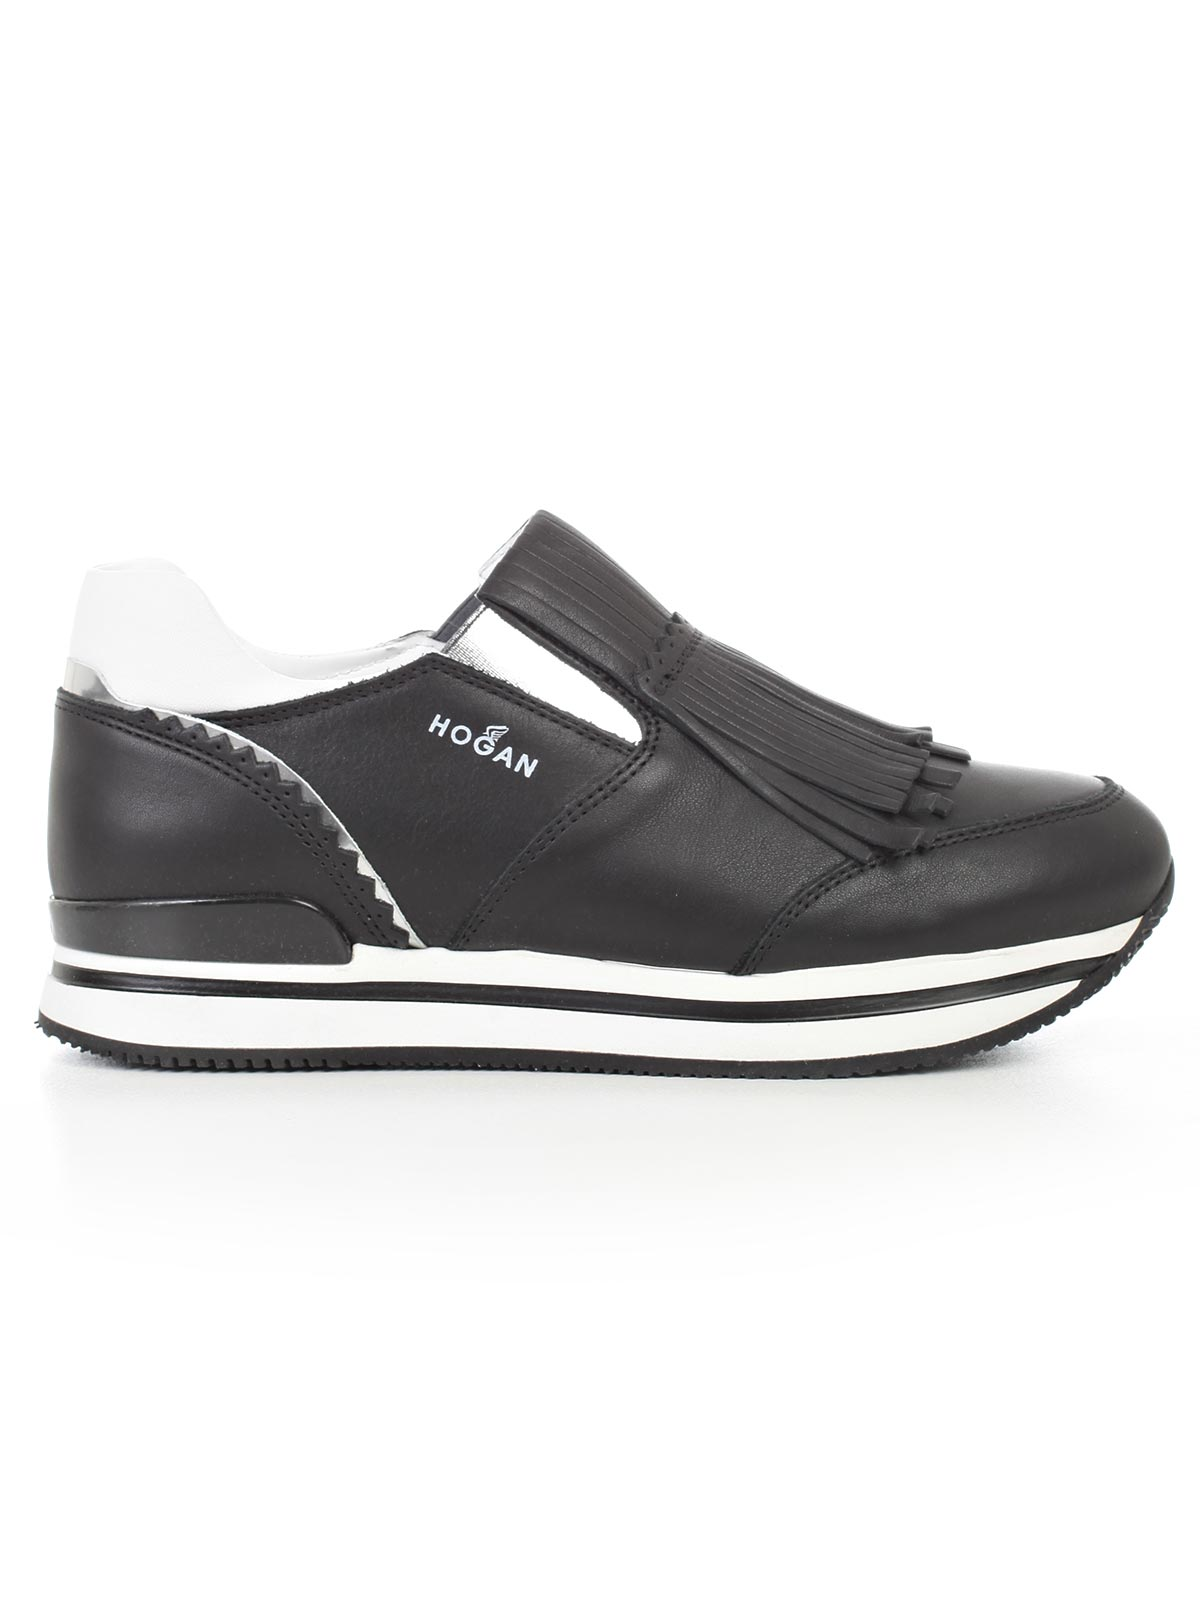 Picture of HOGAN Footwear